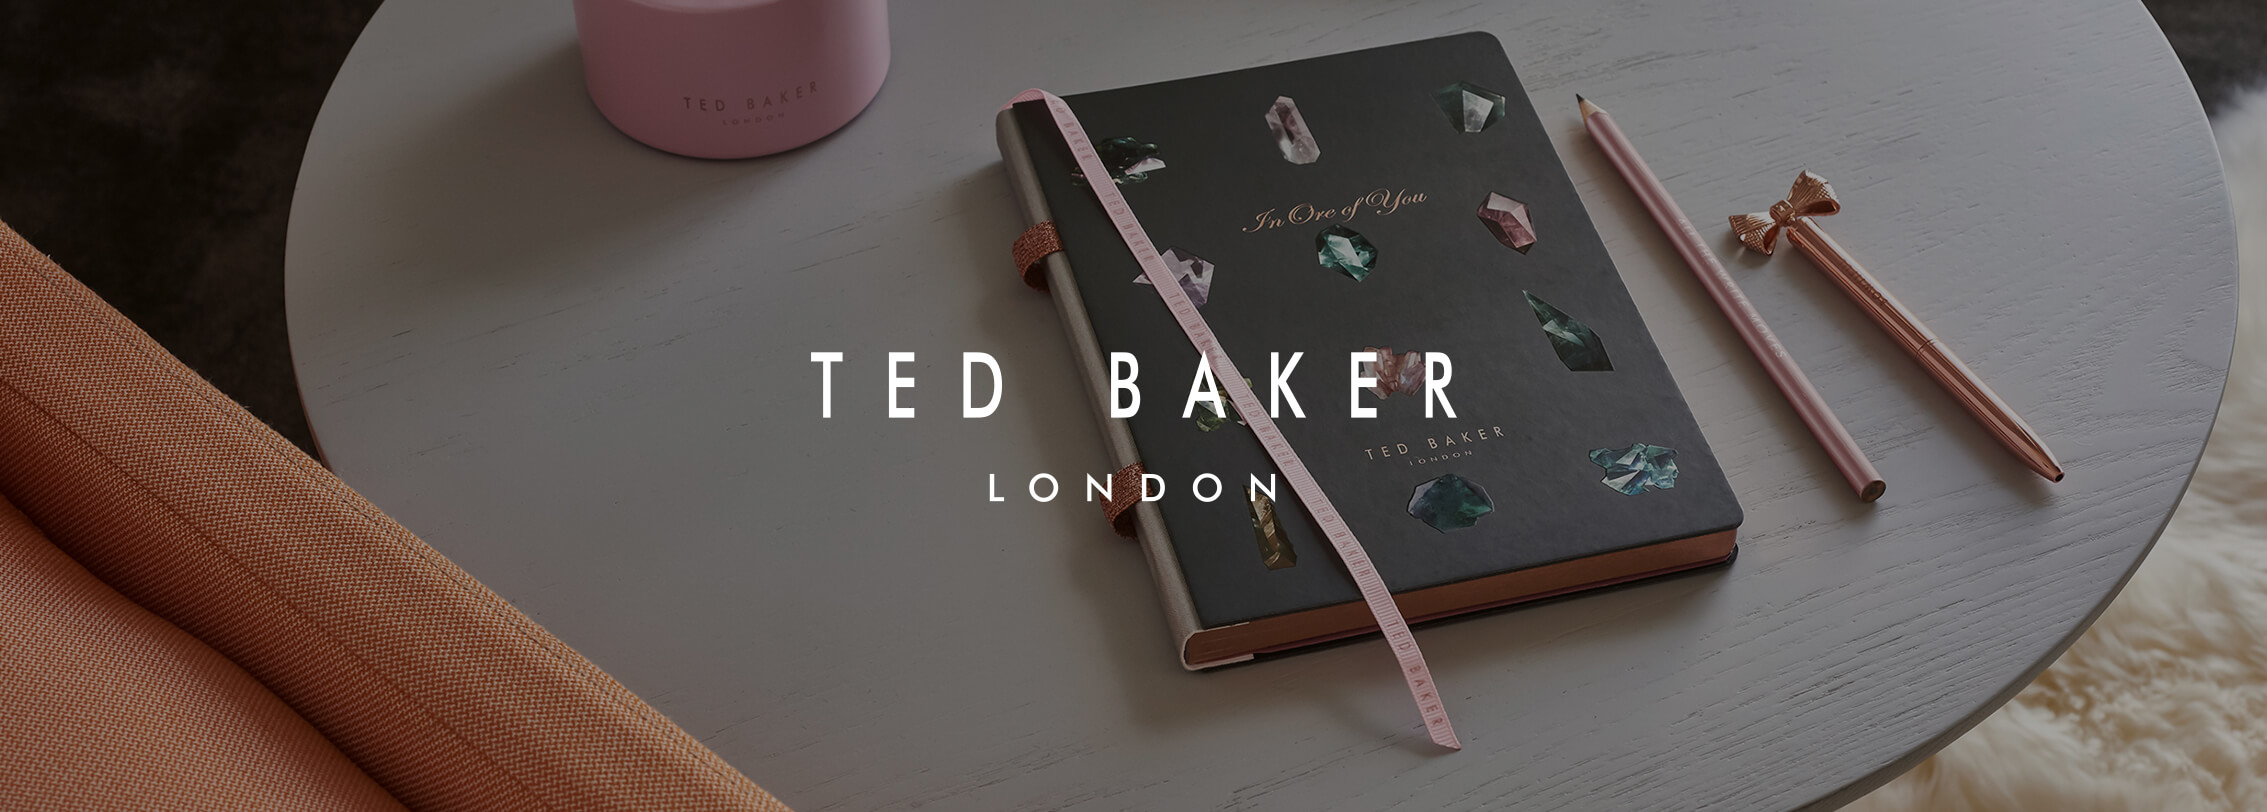 Ted Baker for her